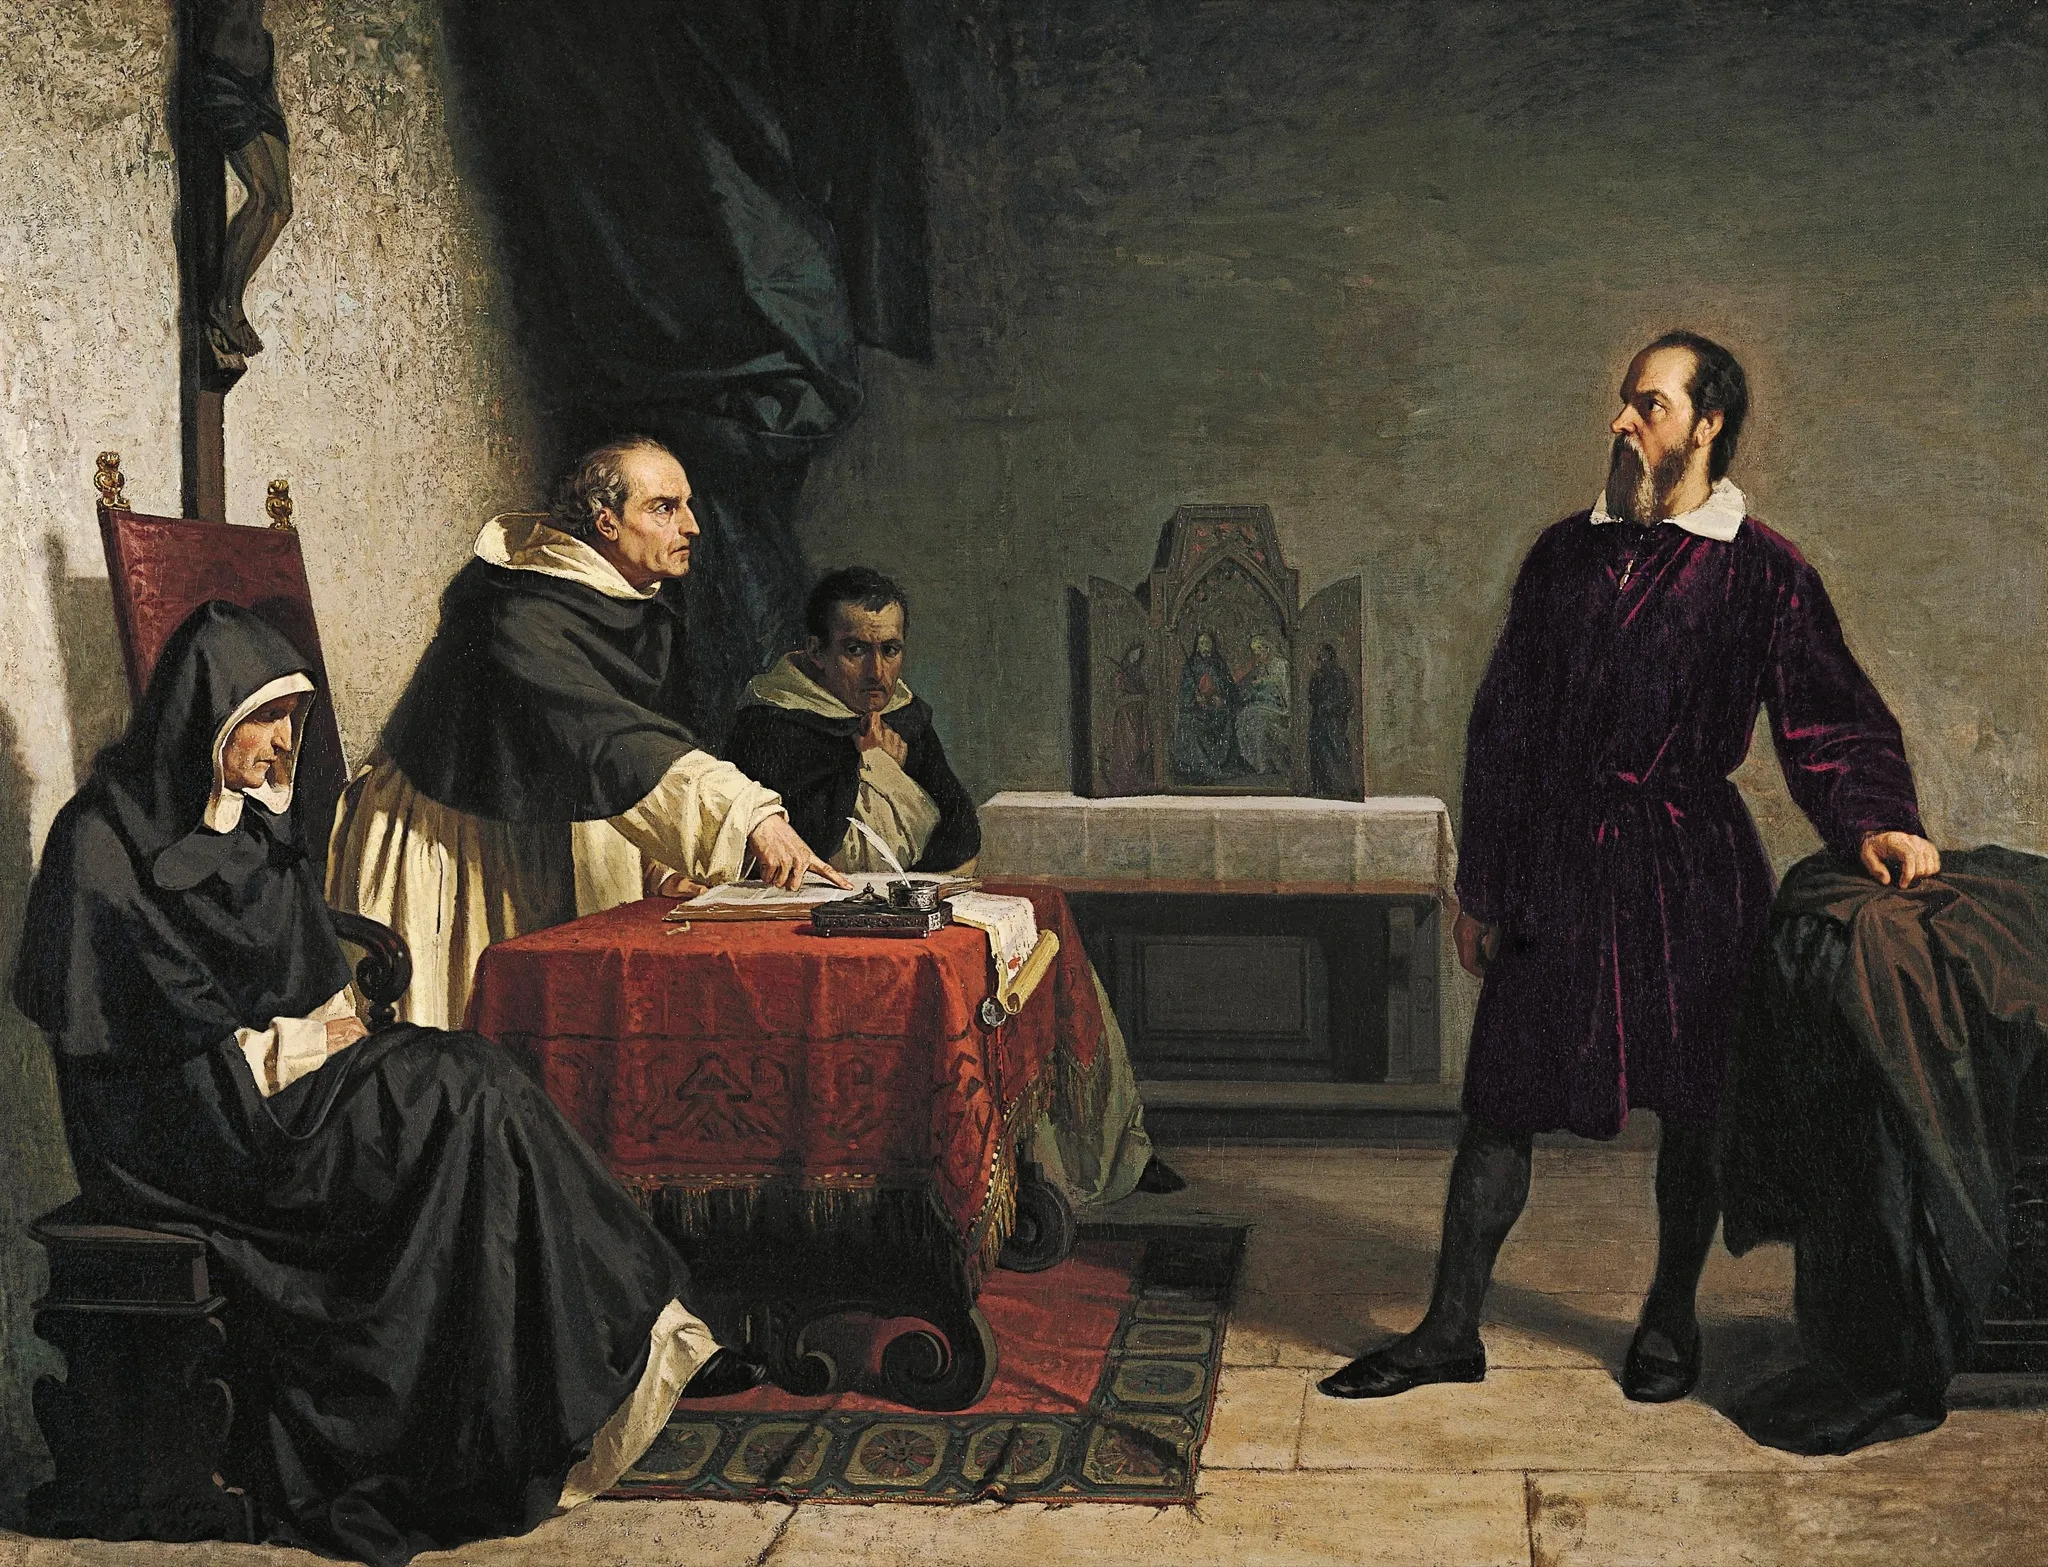 Galileo facing the Vatican Inquisition by Cristiano Banti.